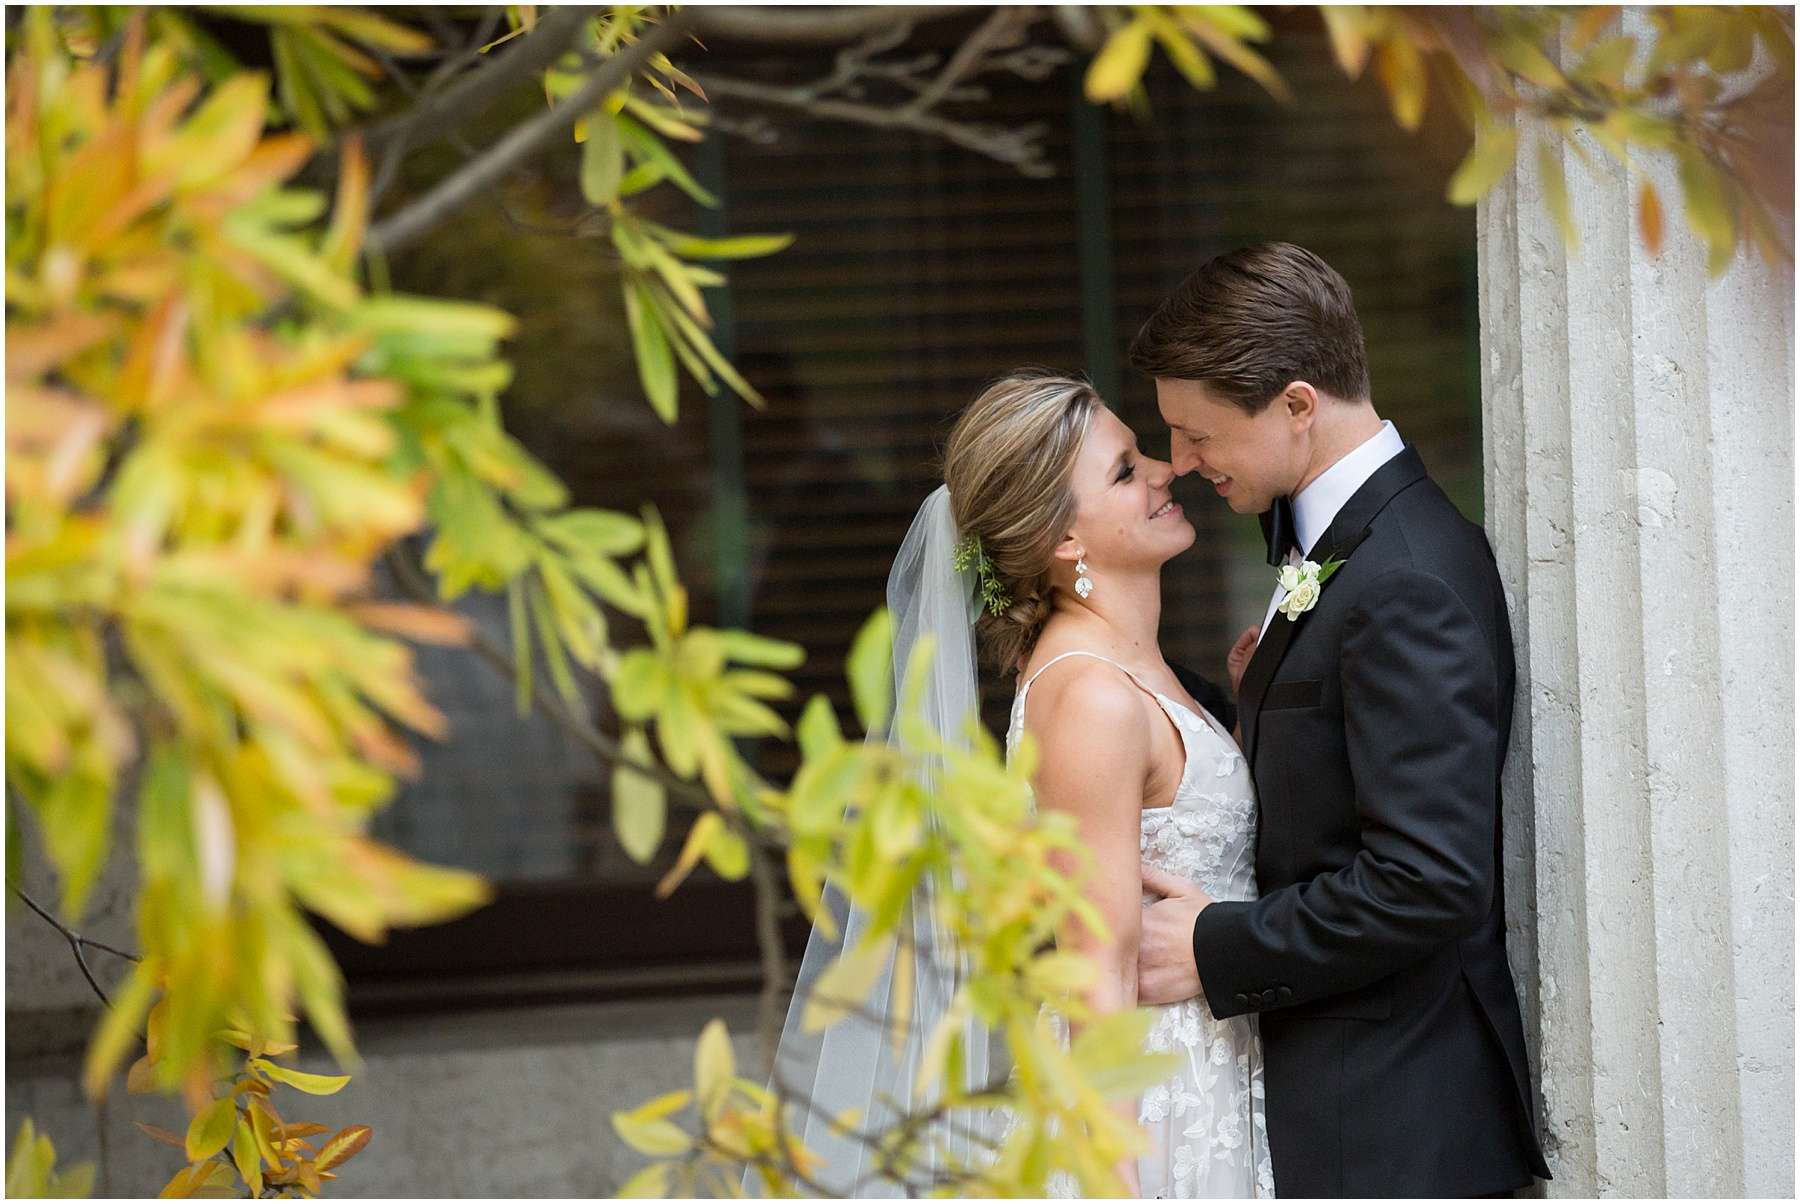 Wedding at the Ohio Statehouse | Columbus Ohio Weddings 152